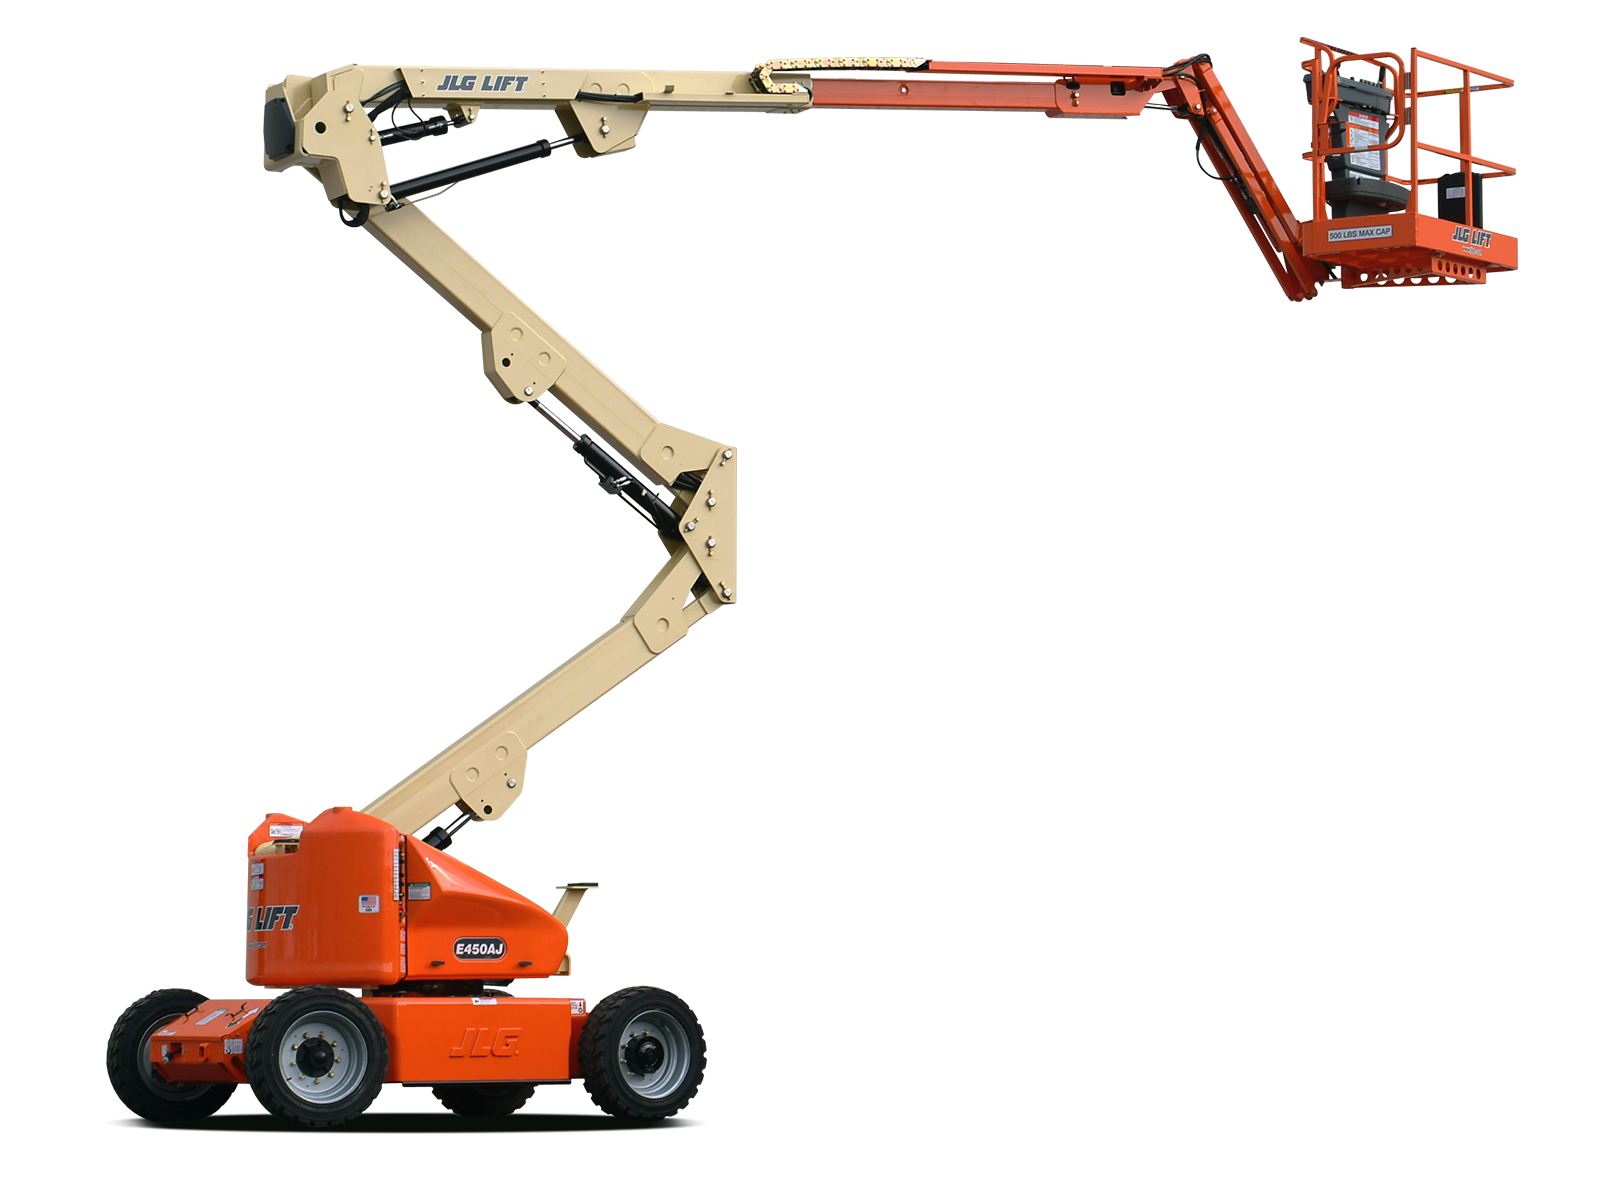 45 Articulating Boom Lift | Electric